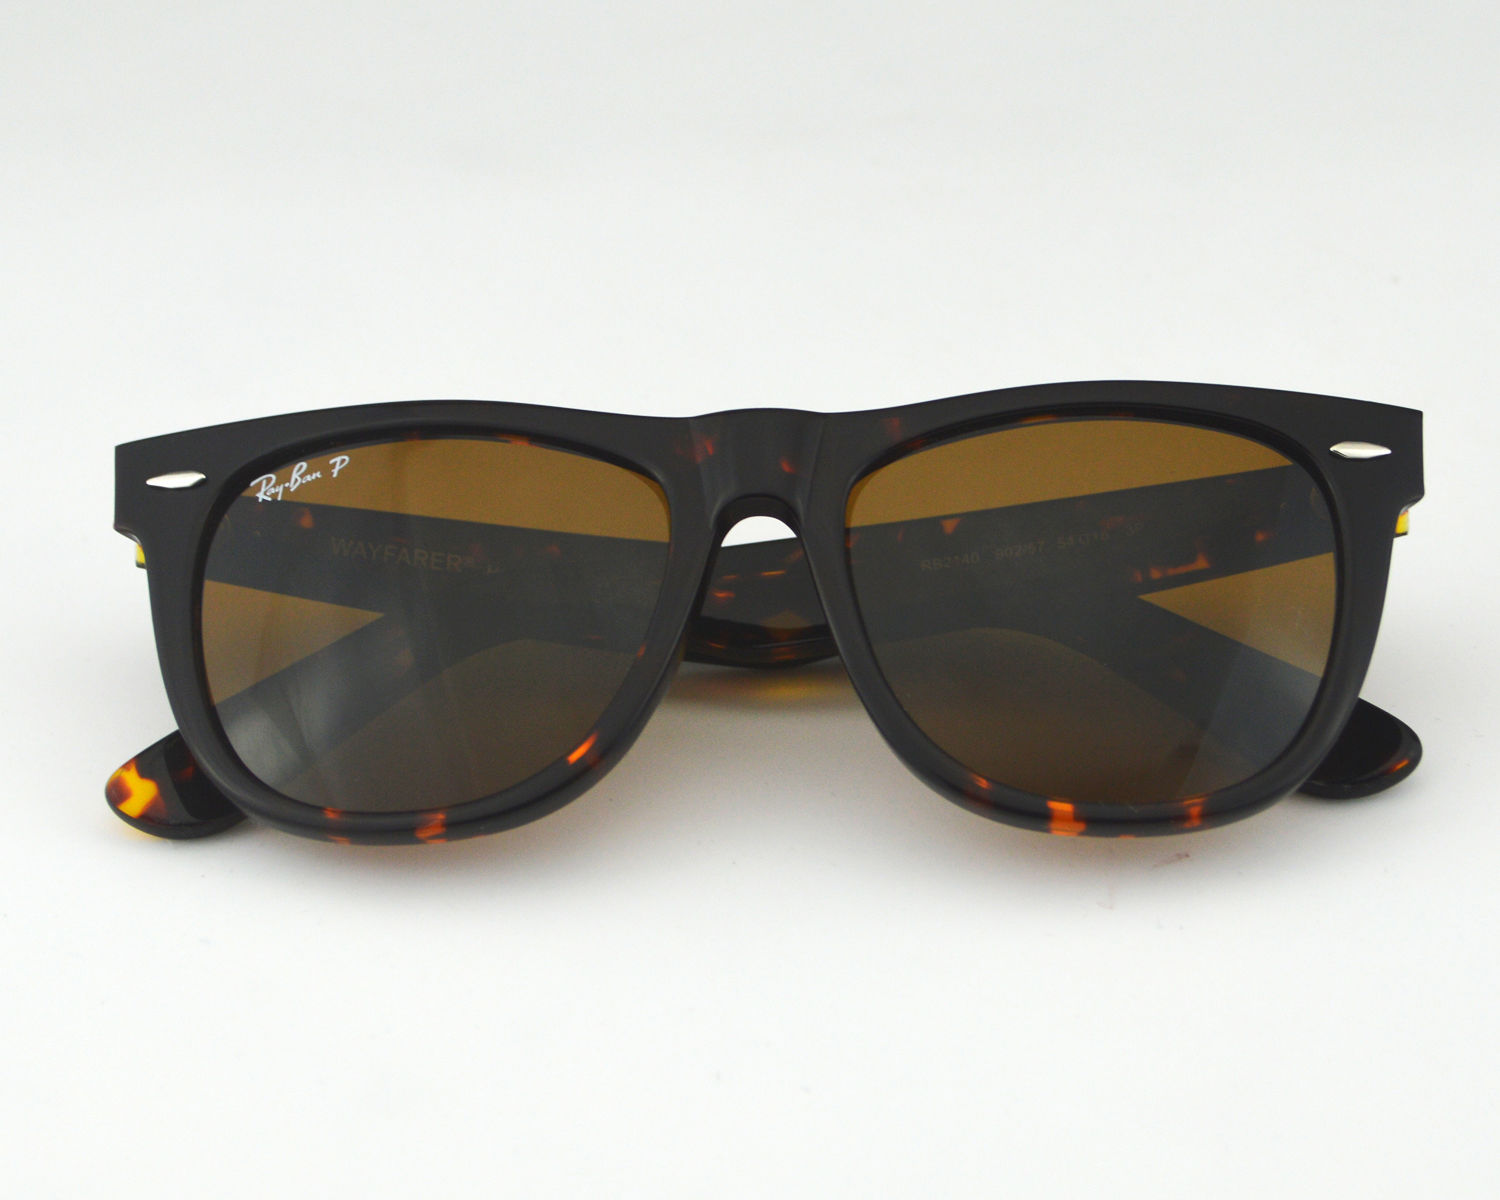 a6a3c824ad Ray Ban RB2140 Original Wayfarer Classics 902 57 Tortoise frame  Polarized  Brown Classic B-15 Lenses Unisex Sunglasses 54mm